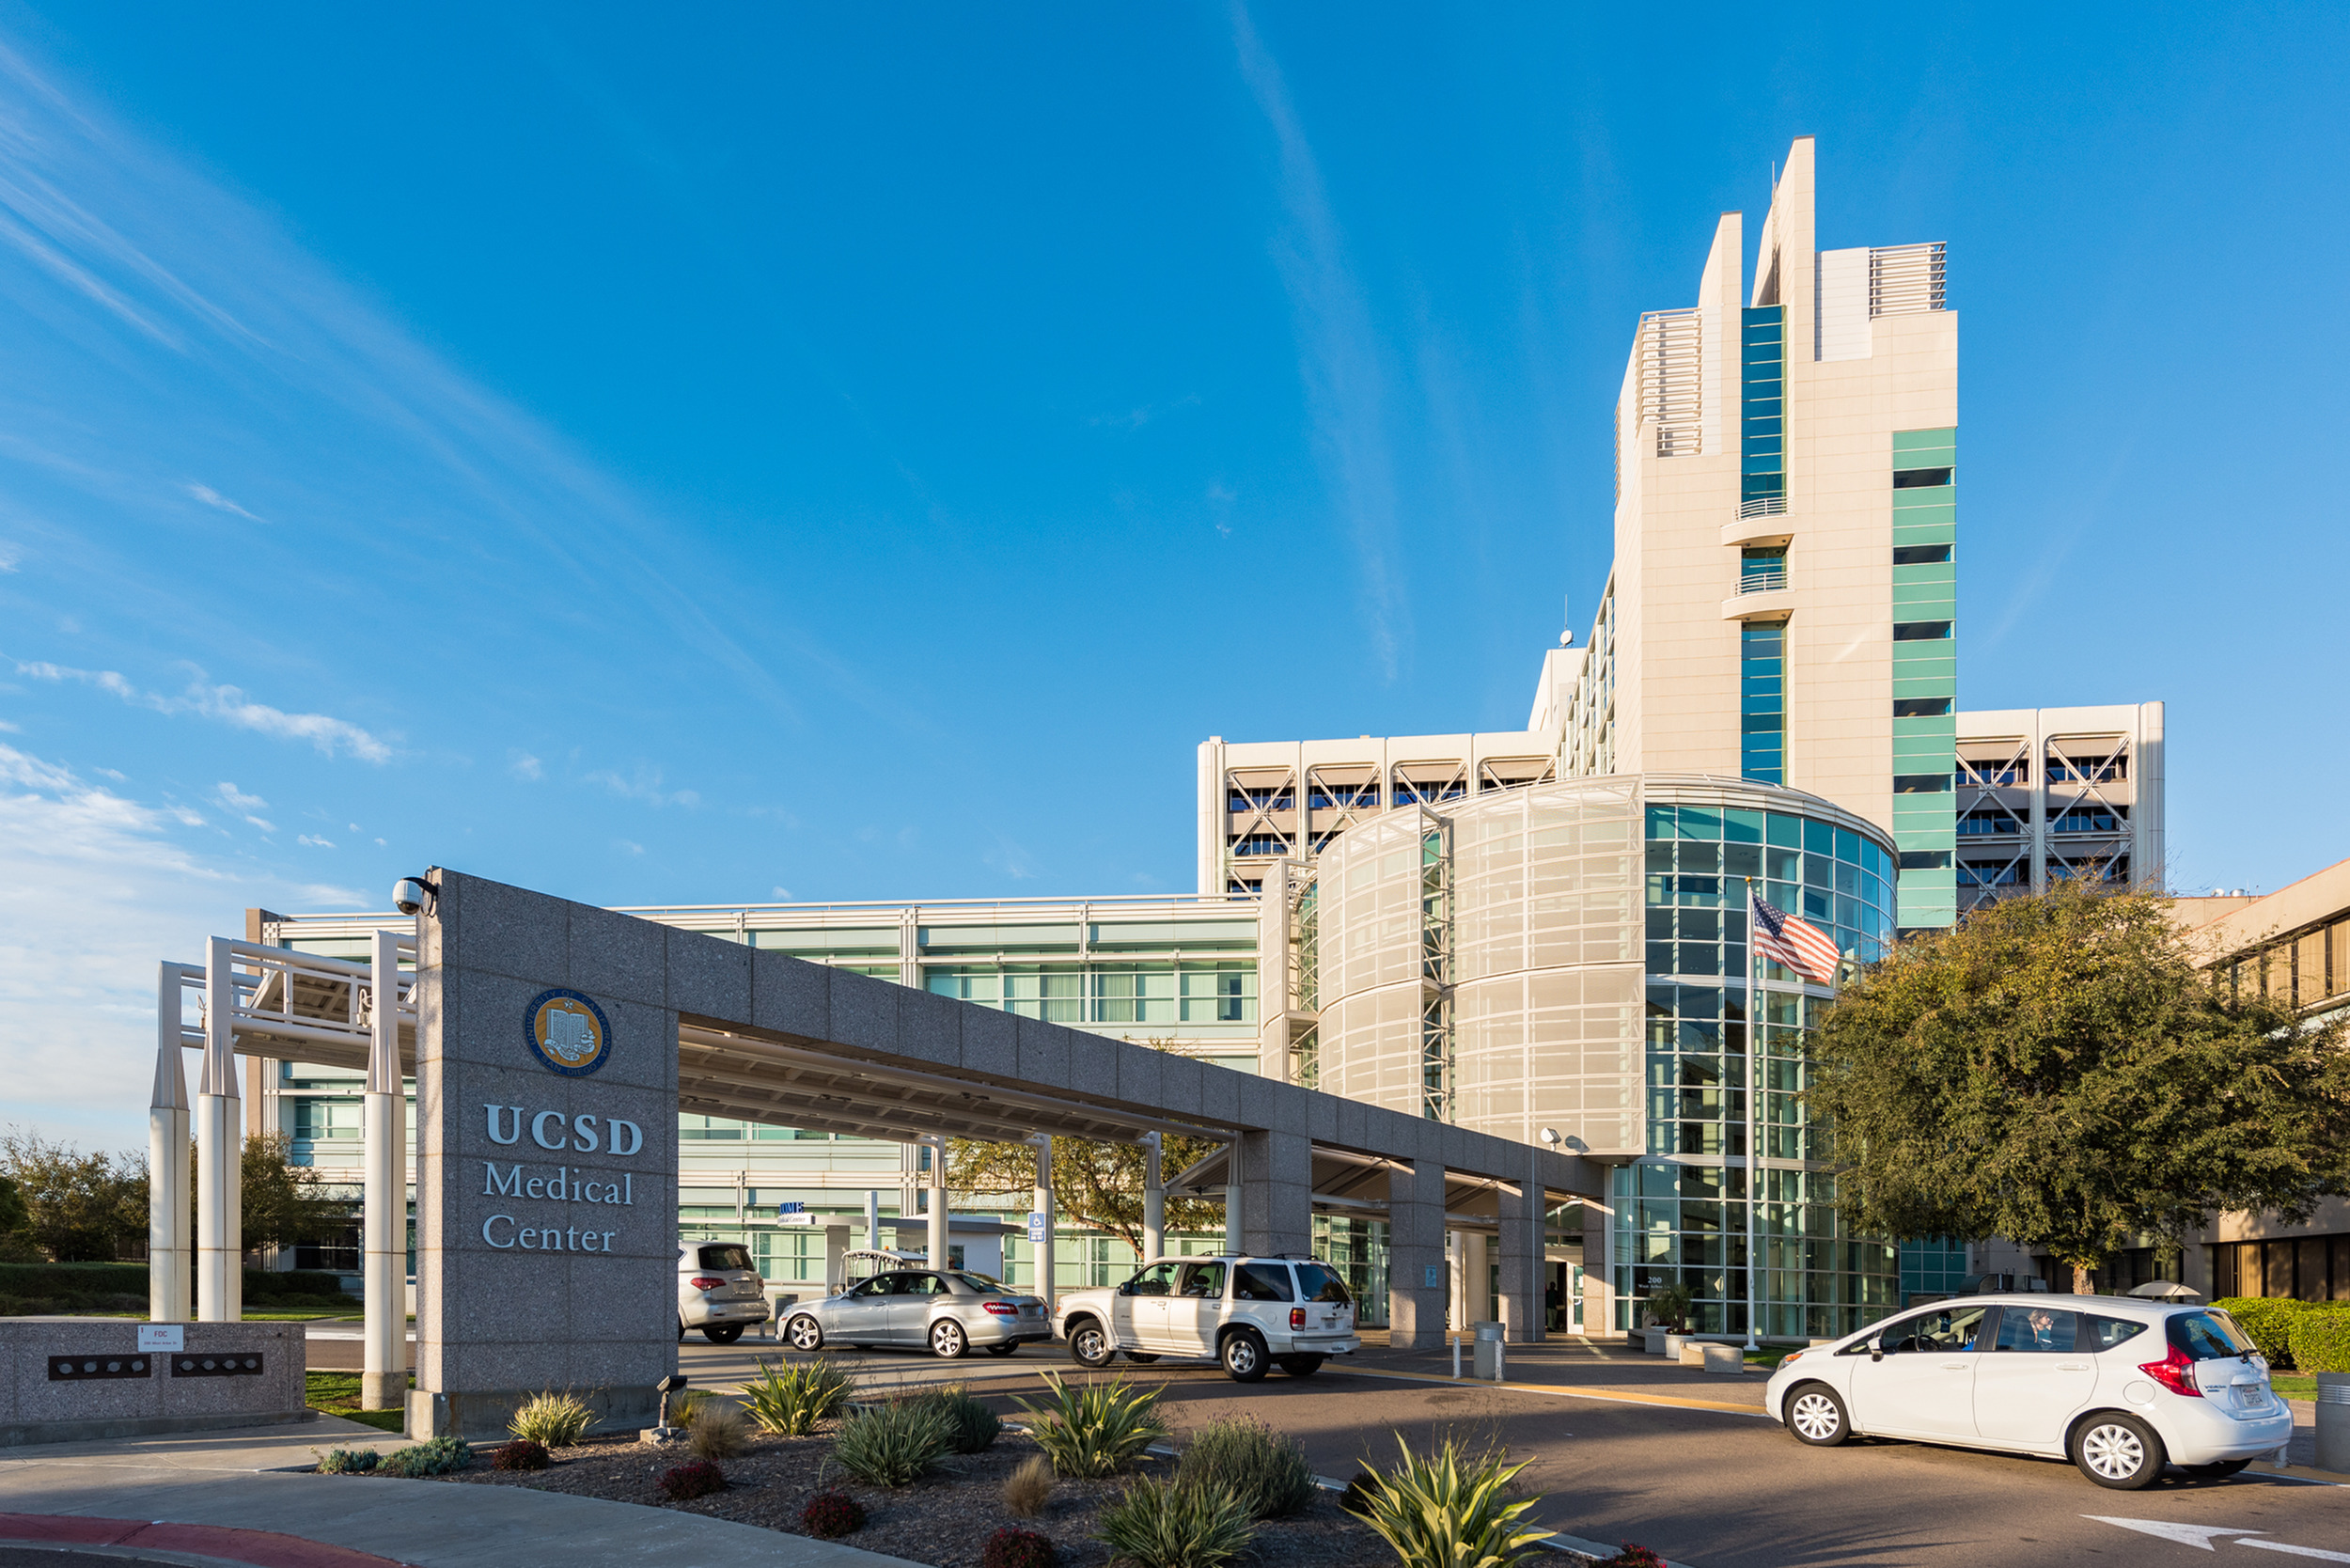 Image of Adjacent to Scripps Mercy Hospital complex and a few blocks from UCSD Medical Center for The Warwick